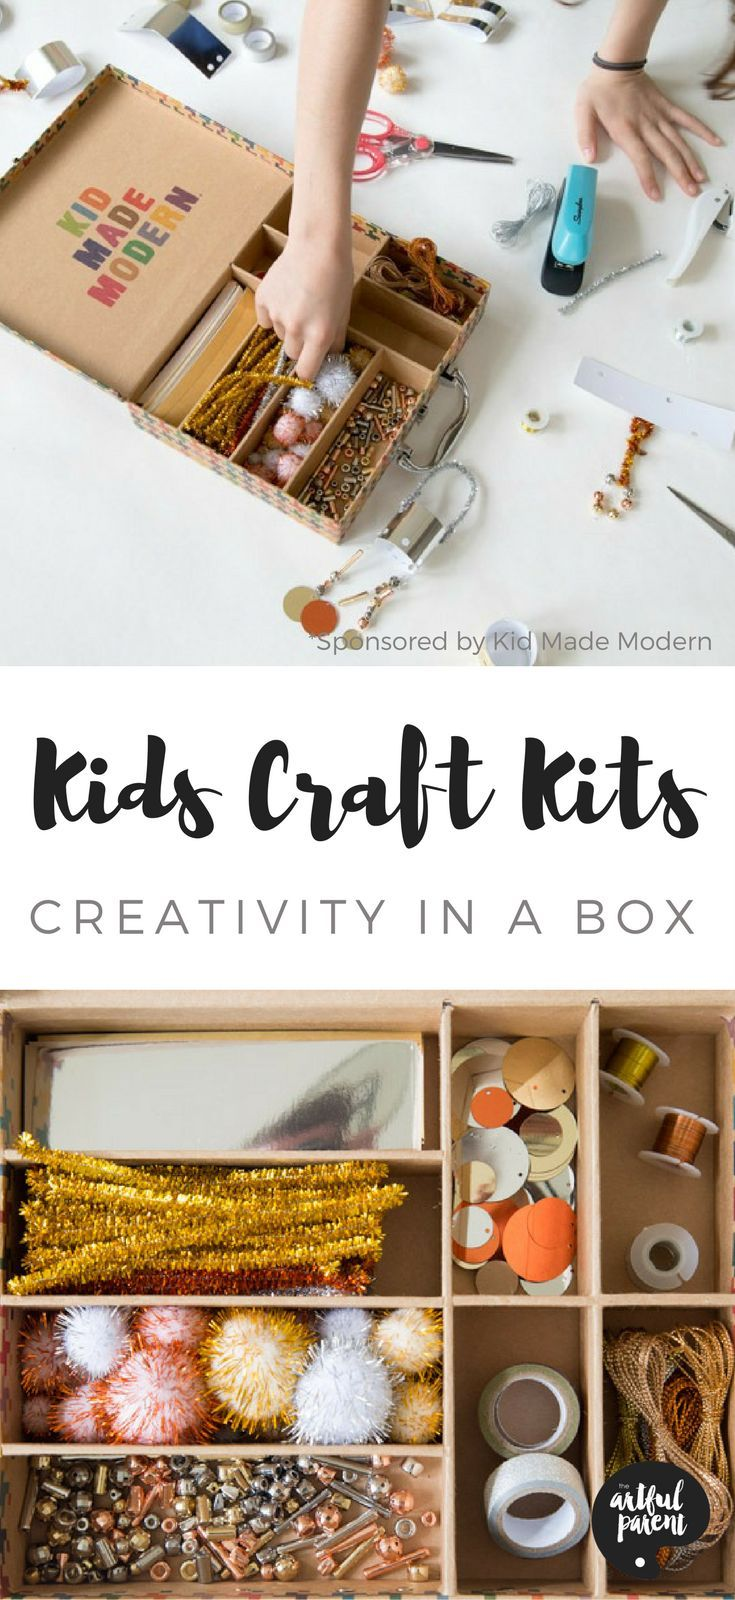 Kids craft kits make great gifts and also provide all the materials for a variety of creative projects. Here are some awesome open-ended craft kits for kids.